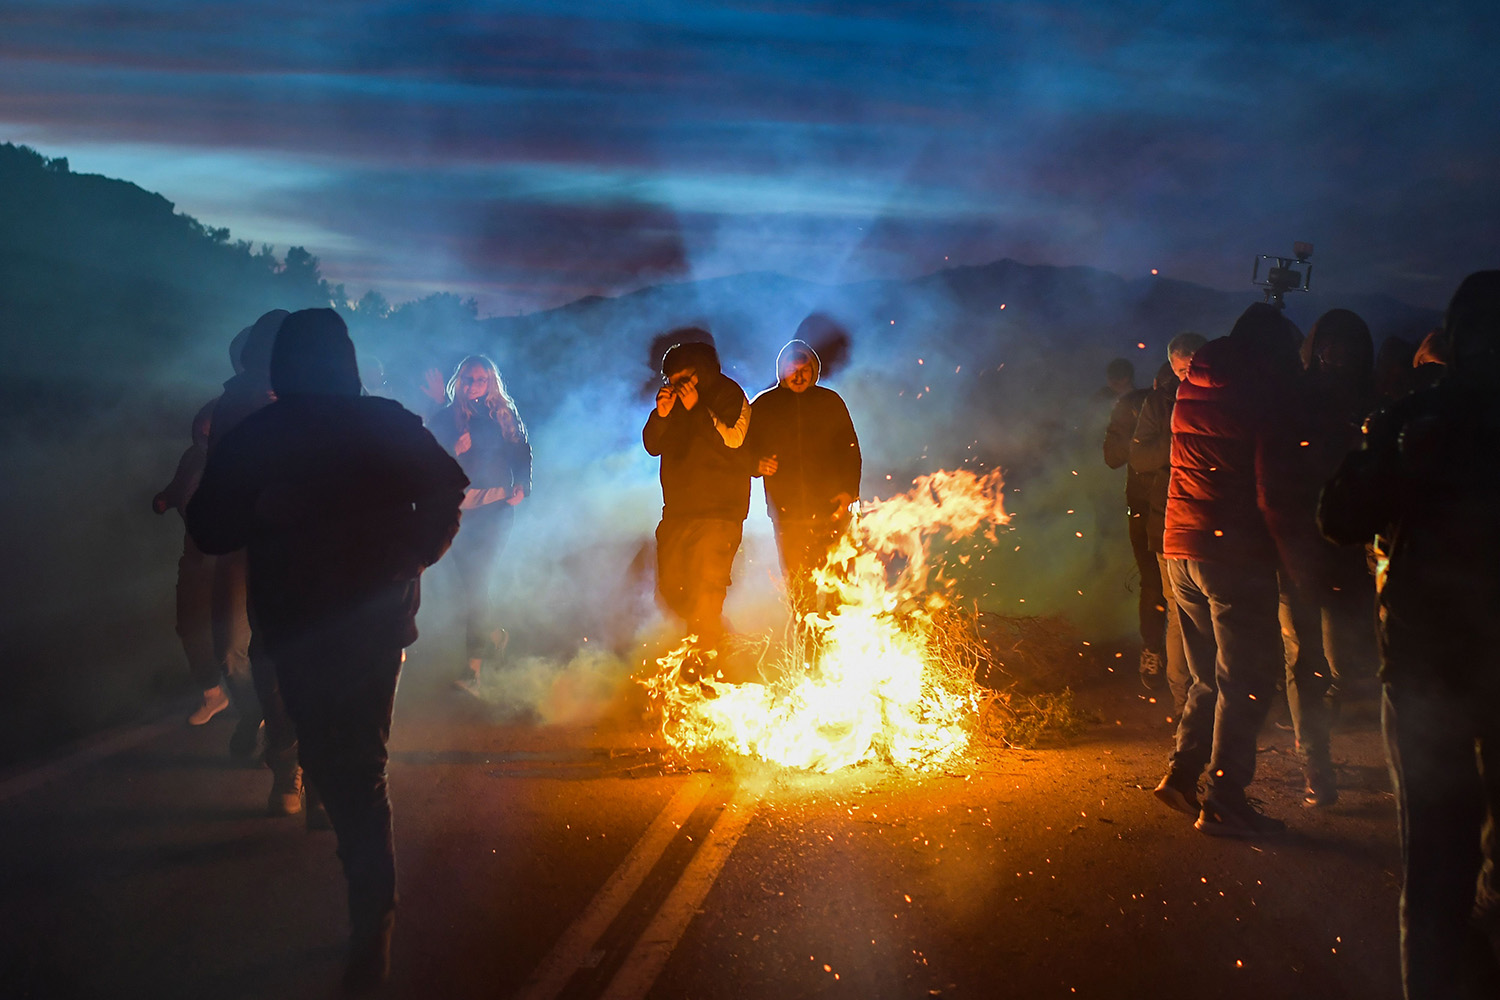 Demonstrators walk away from Greek anti-riot police as they protest against the construction of a new migrant camp near the town of Mantamados on the northeastern Aegean island of Lesbos on Feb. 25. ARIS MESSINIS/AFP via Getty Images